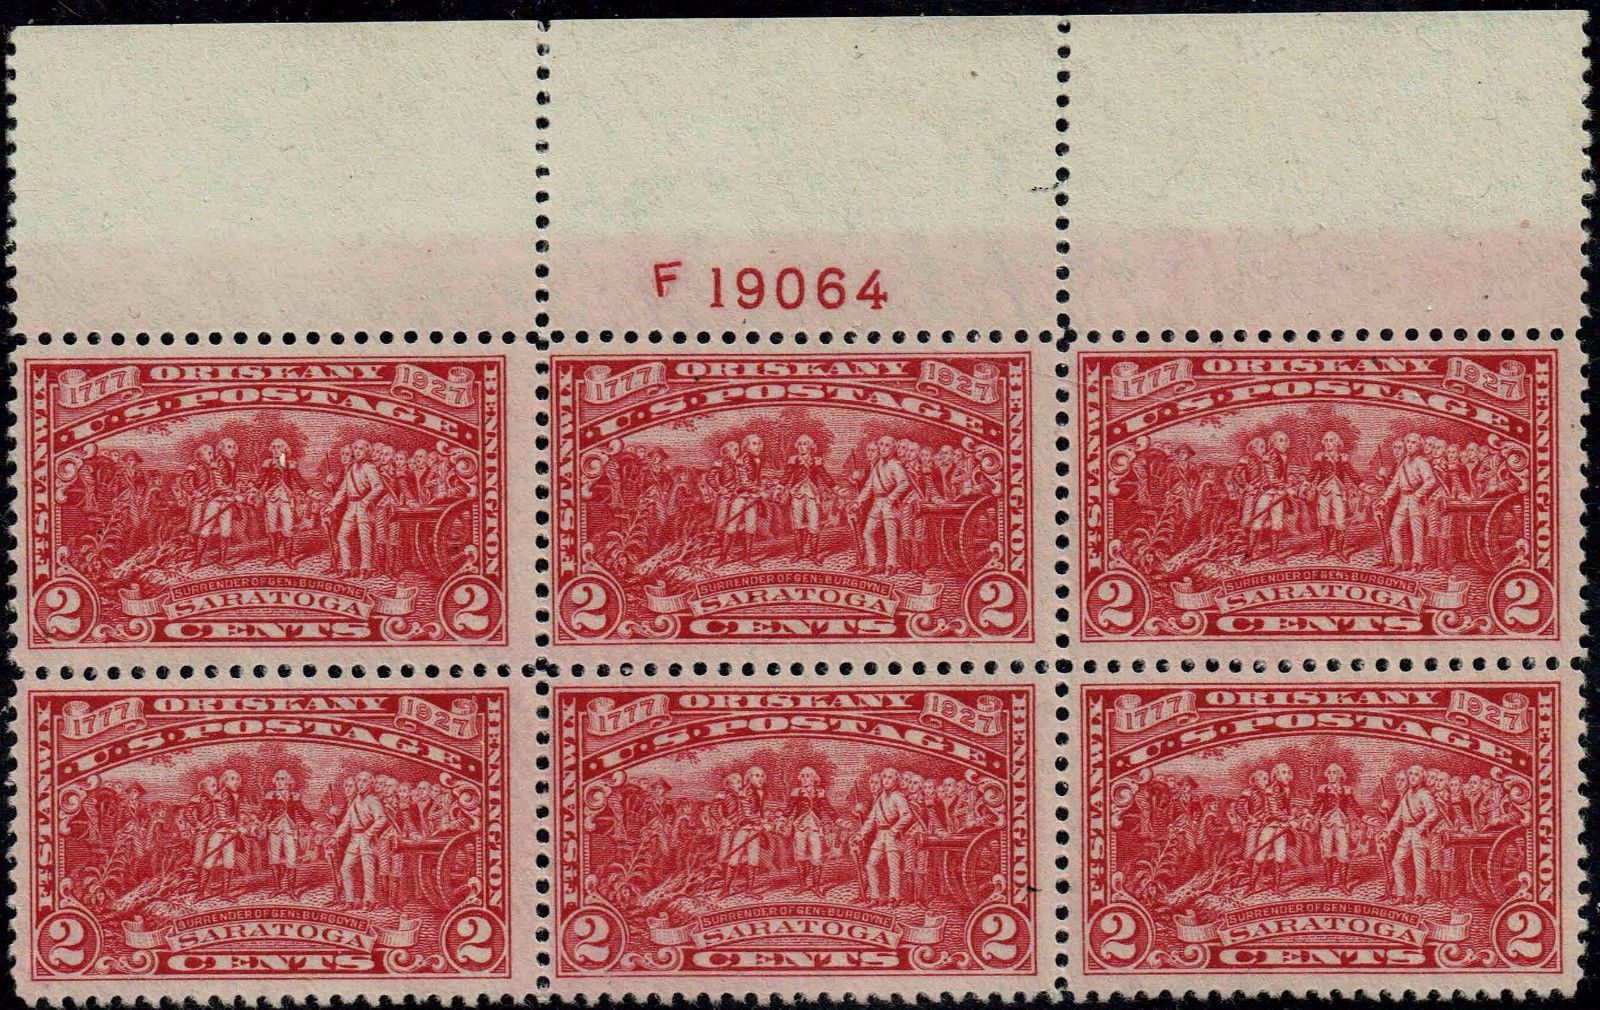 United States - Scott #644 (1927) plate block of six with the plate number from the top margin of the sheet